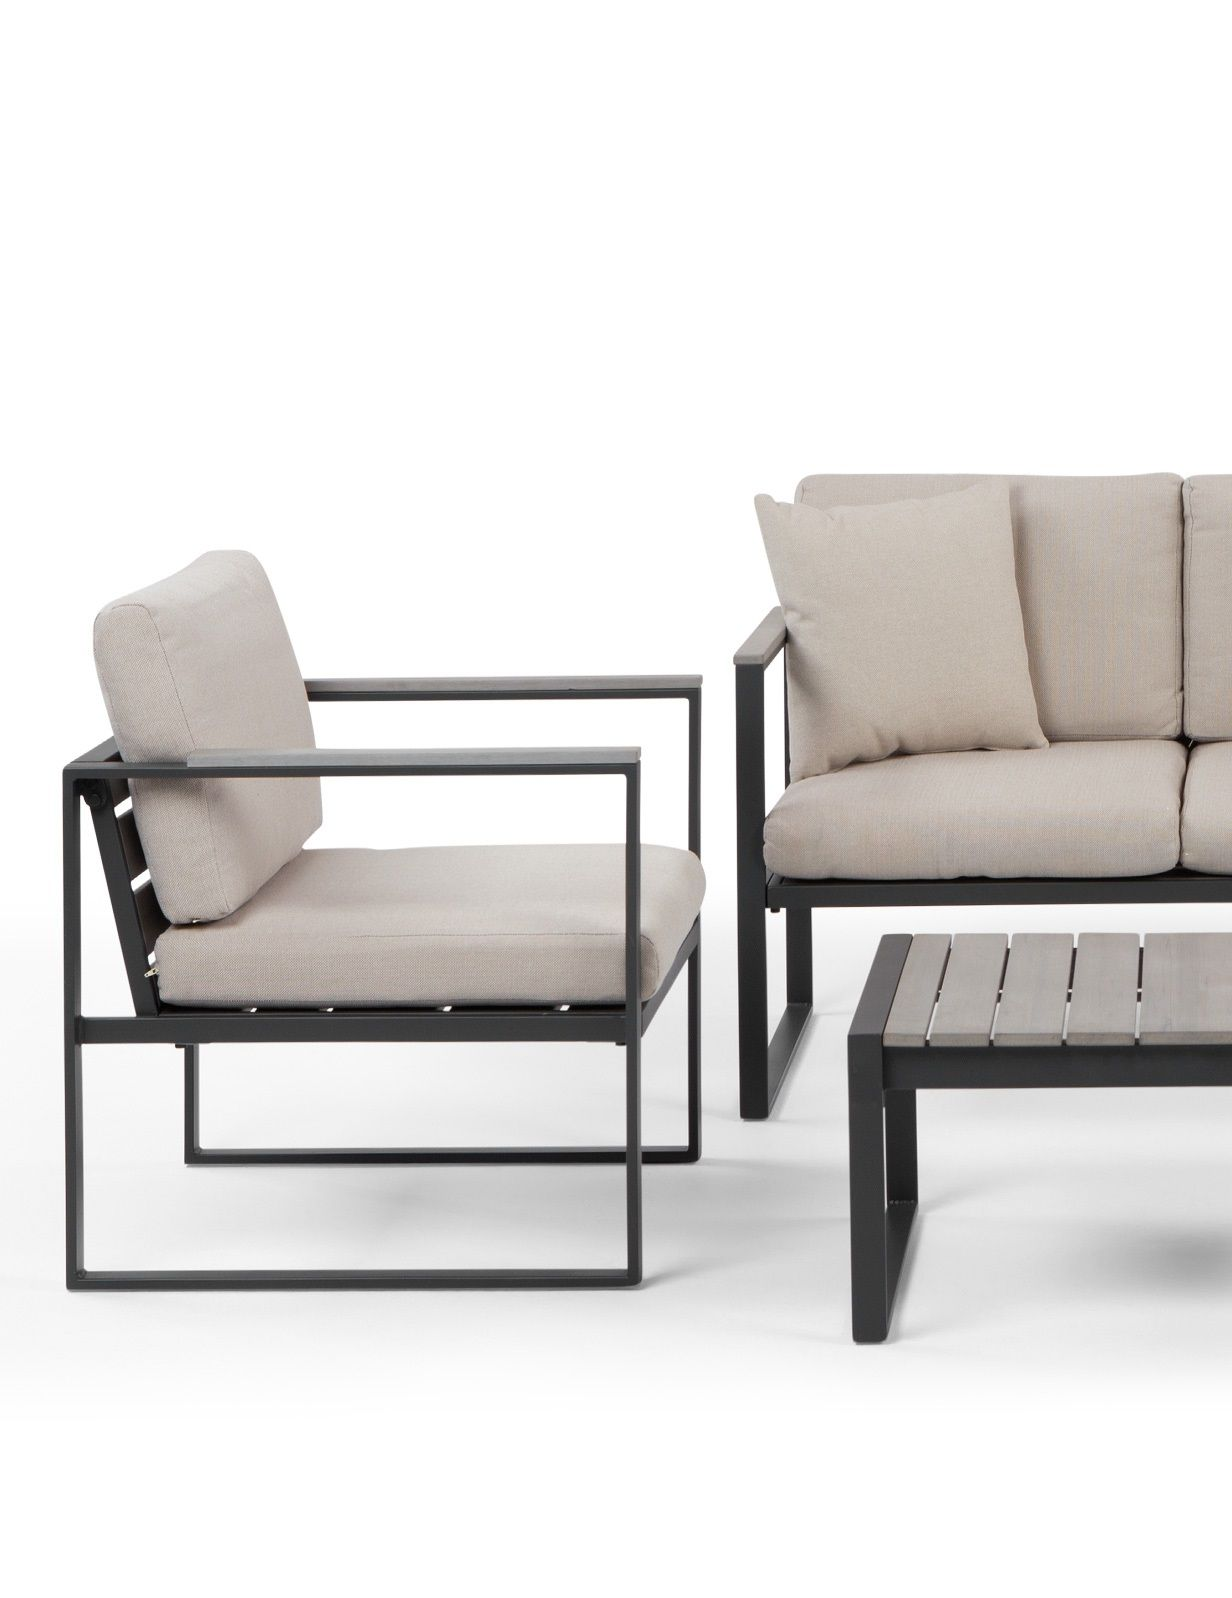 the catania lounge set in grey and beige stylish outdoor. Black Bedroom Furniture Sets. Home Design Ideas